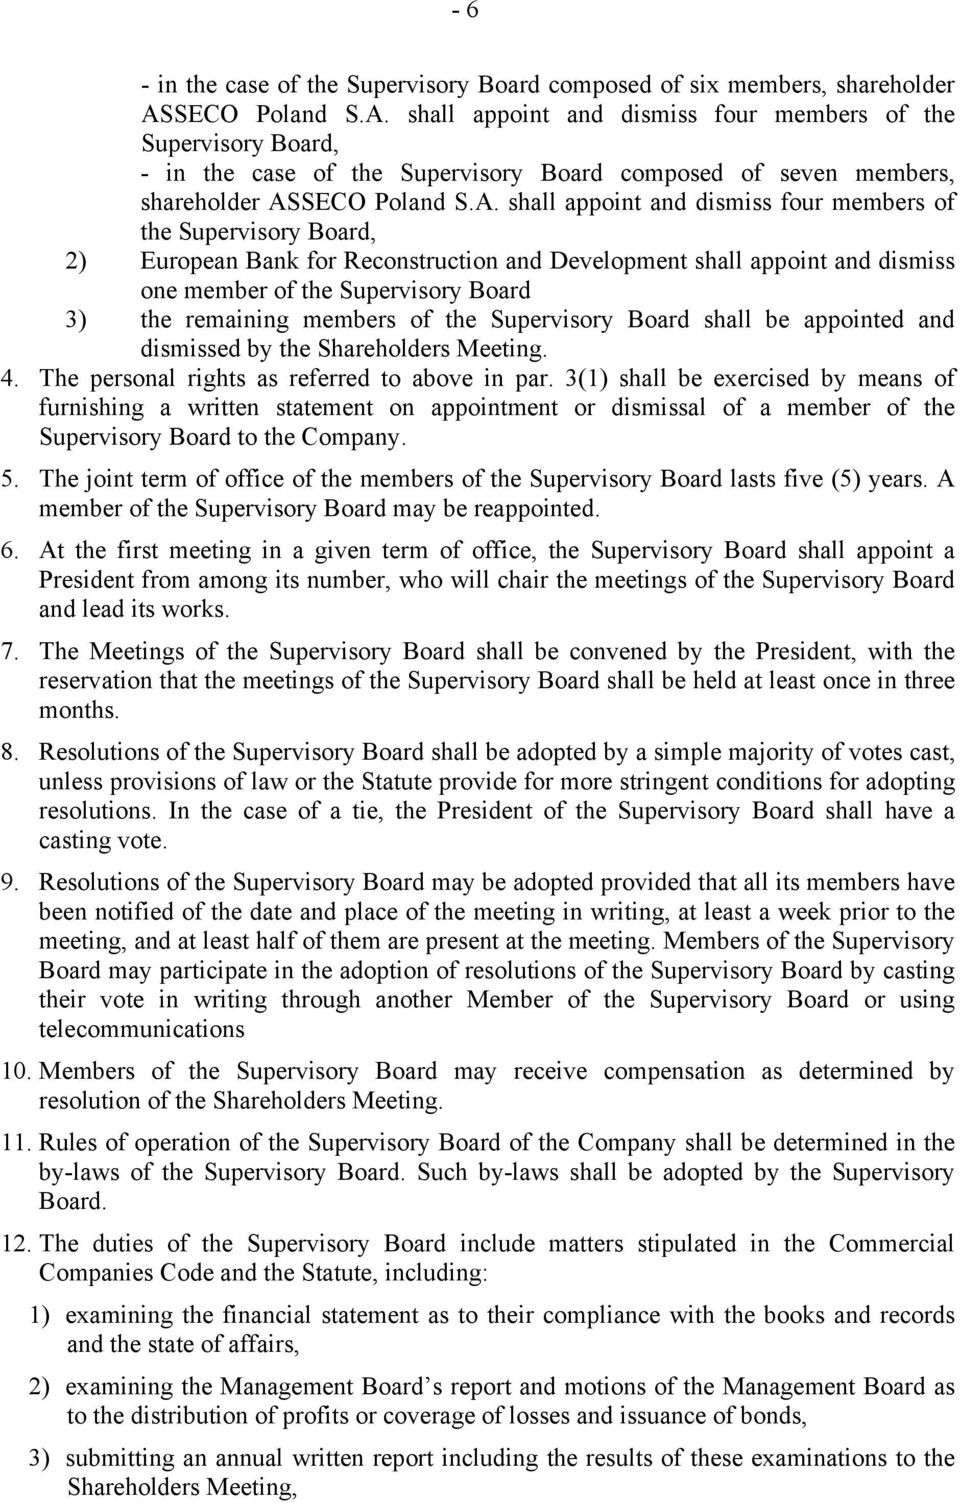 shall appoint and dismiss four members of the Supervisory Board, - in the case of the Supervisory Board composed of seven members, shareholder AS shall appoint and dismiss four members of the